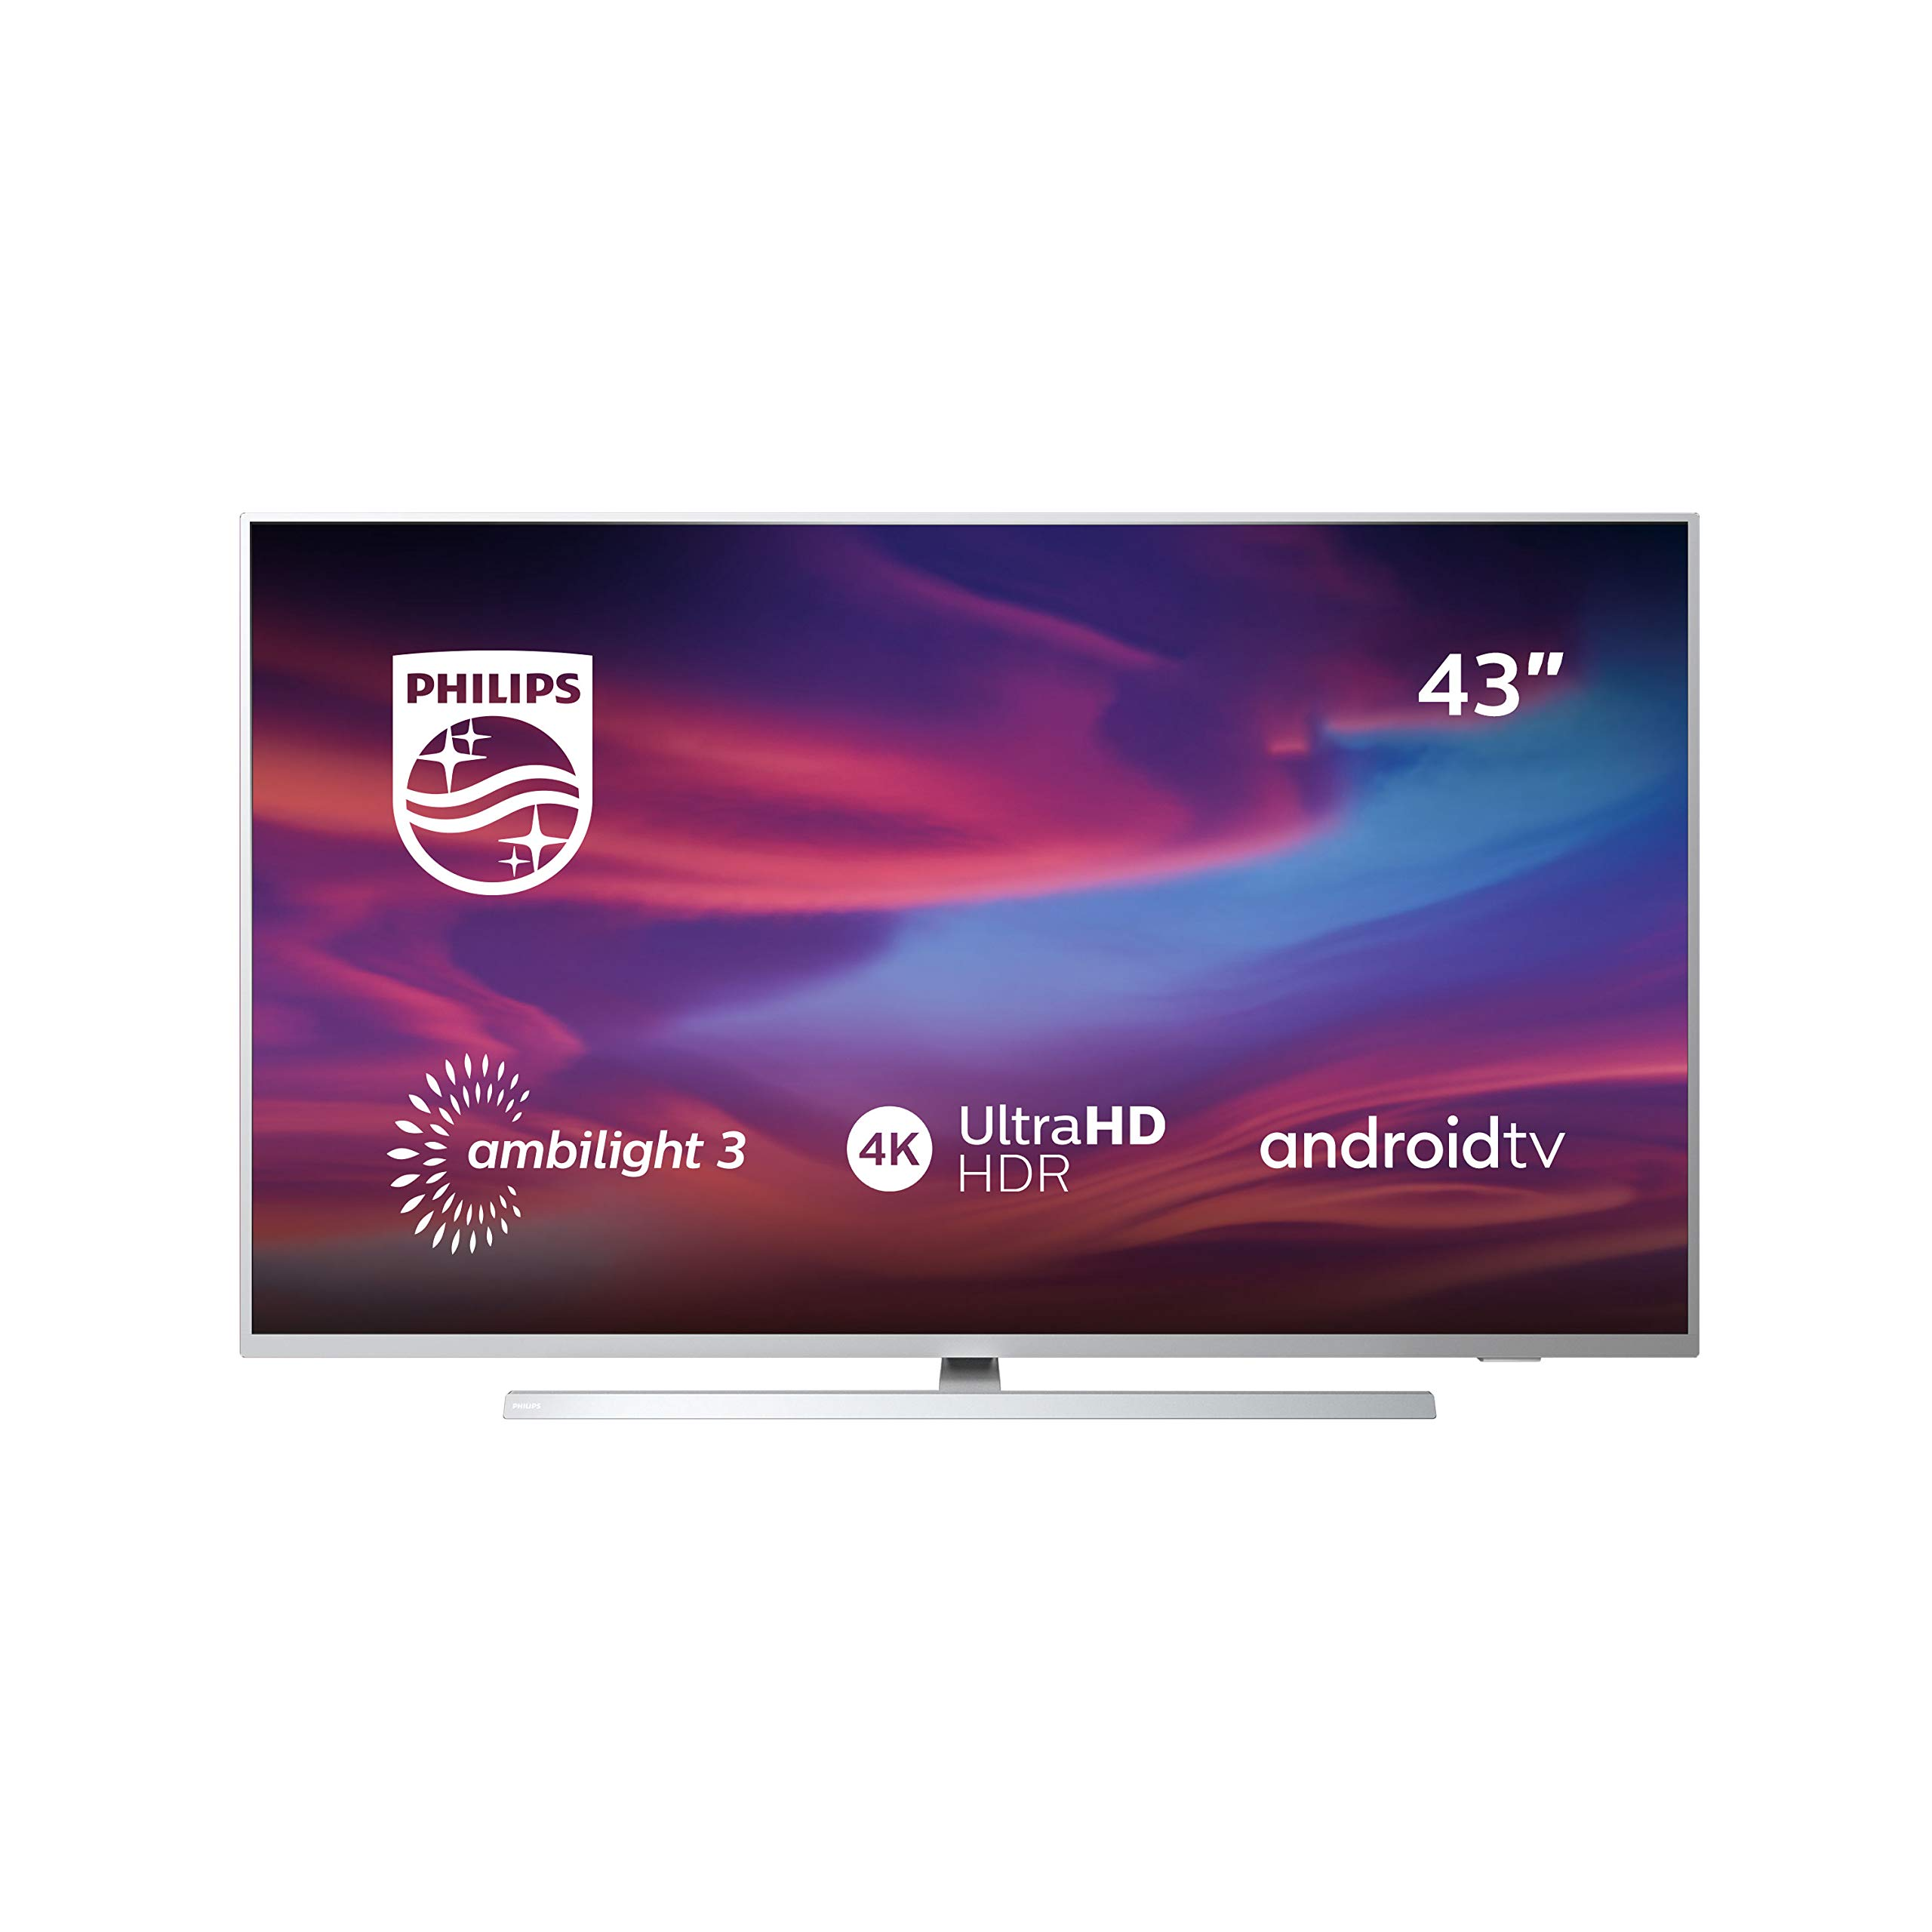 Televisor Philips Ambilight 43PUS7304/12 Smart TV de 108 cm (43 pulgadas) con 4K UHD, LED TV, HDR 10+, Android TV, Google Assistant, Dolby Atmos y compatibilidad con Alexa, color plata claro: Philips: